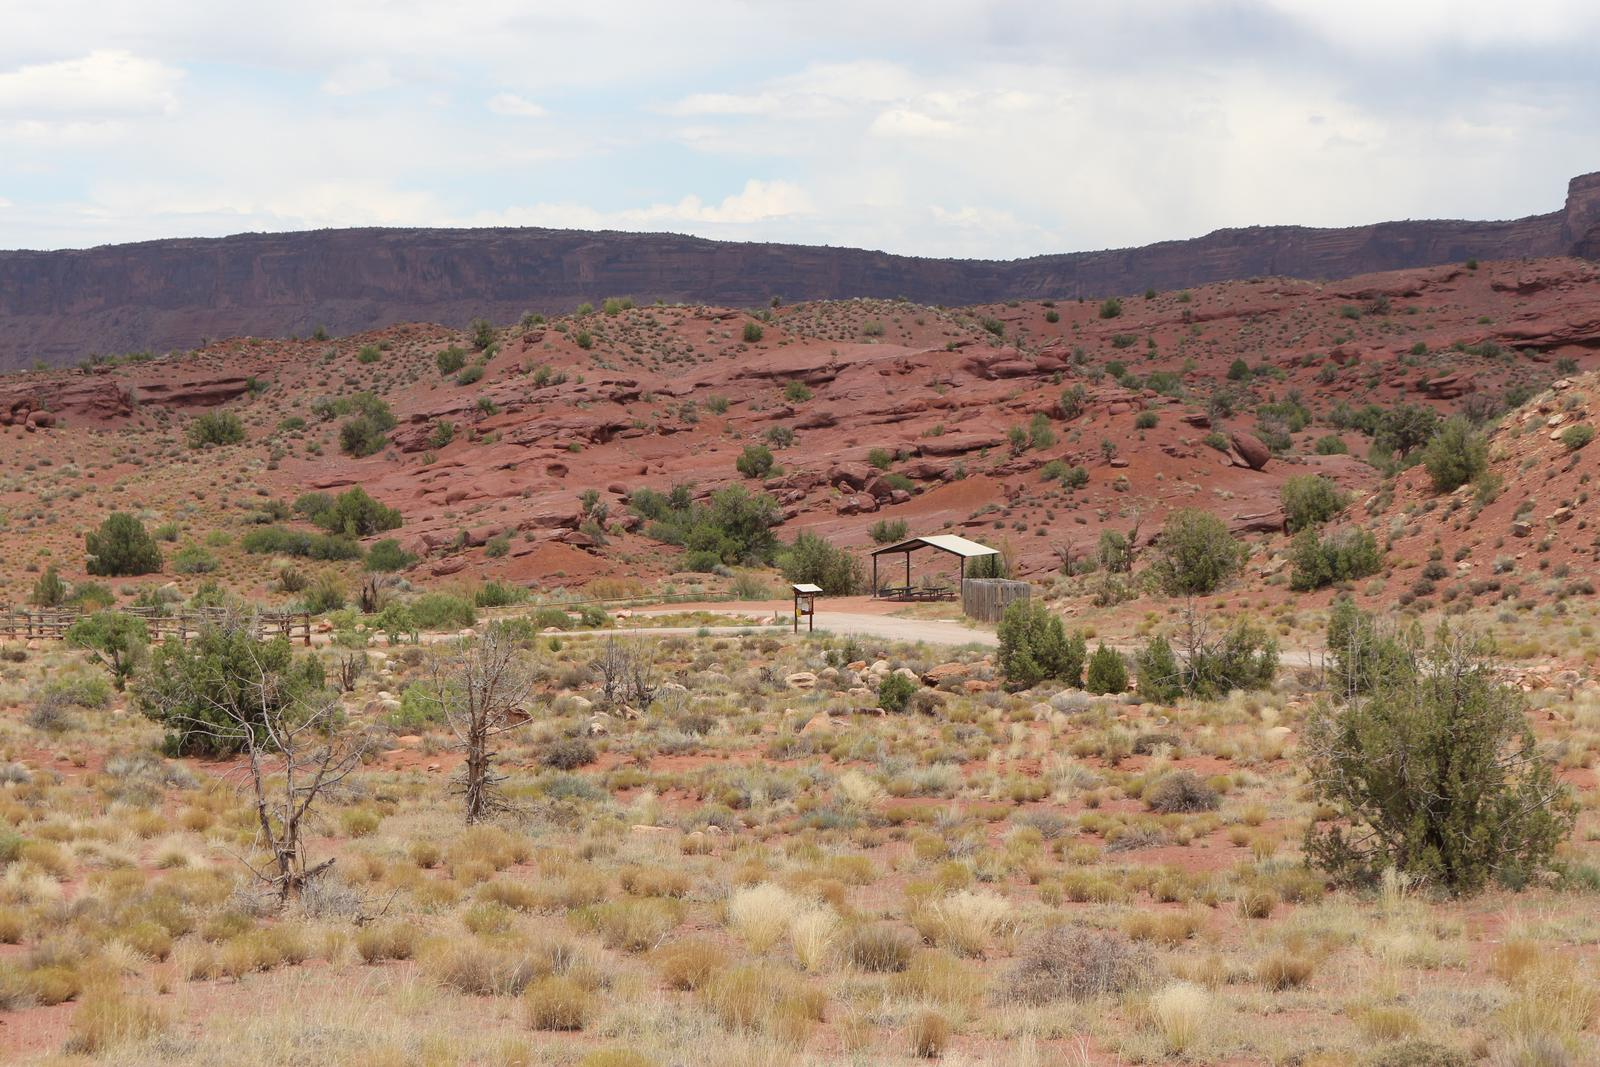 The Upper Onion Group Site A is tucked into the side of a hill. Vegetation in the area includes small shrubs covering most of the ground, with the occasional juniper tree dotting the landscape.